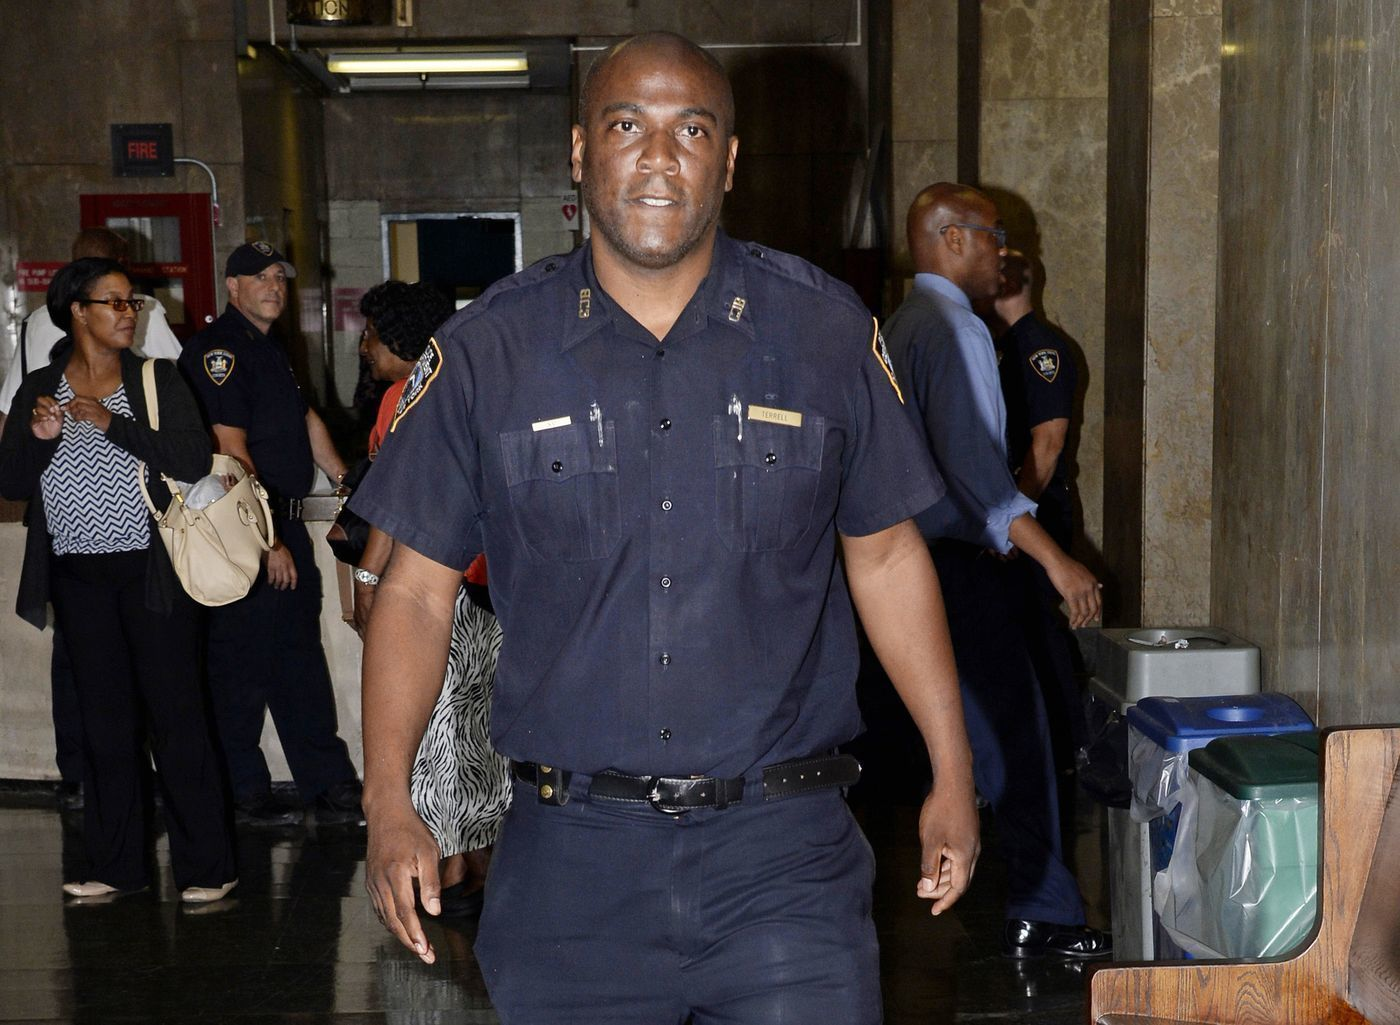 NYPD cops receive same penalty despite very different charges | New York Daily News